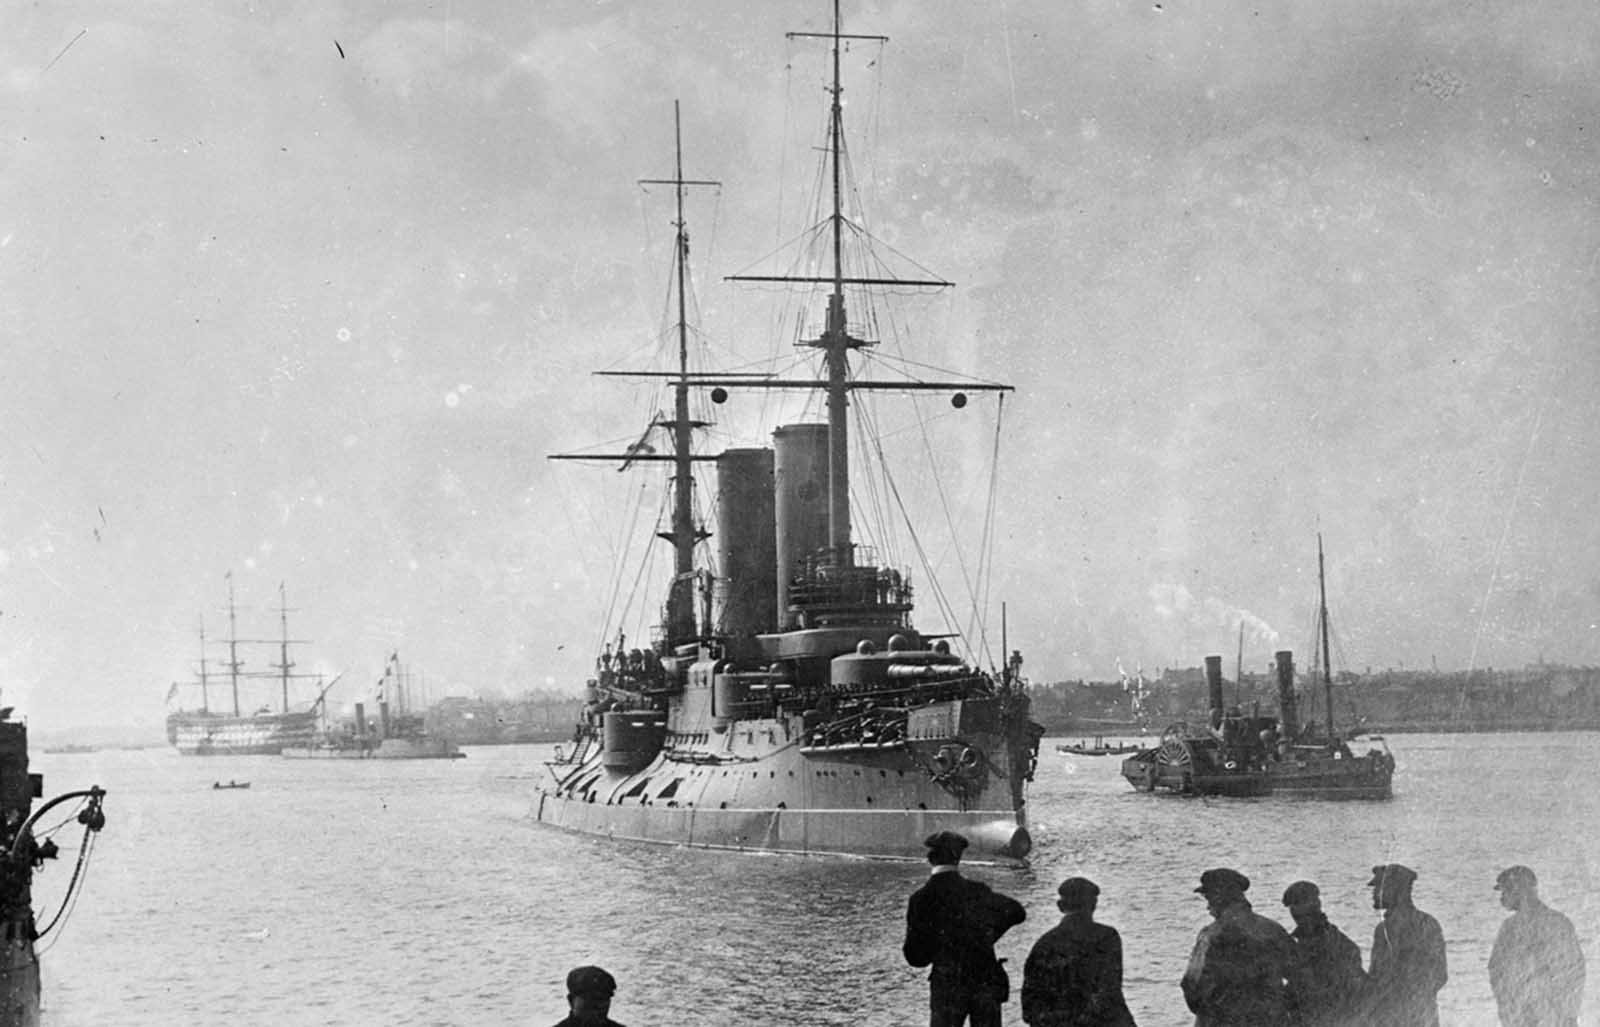 The Russian flagship Tsarevitch passing HMS Victory, ca. 1915.